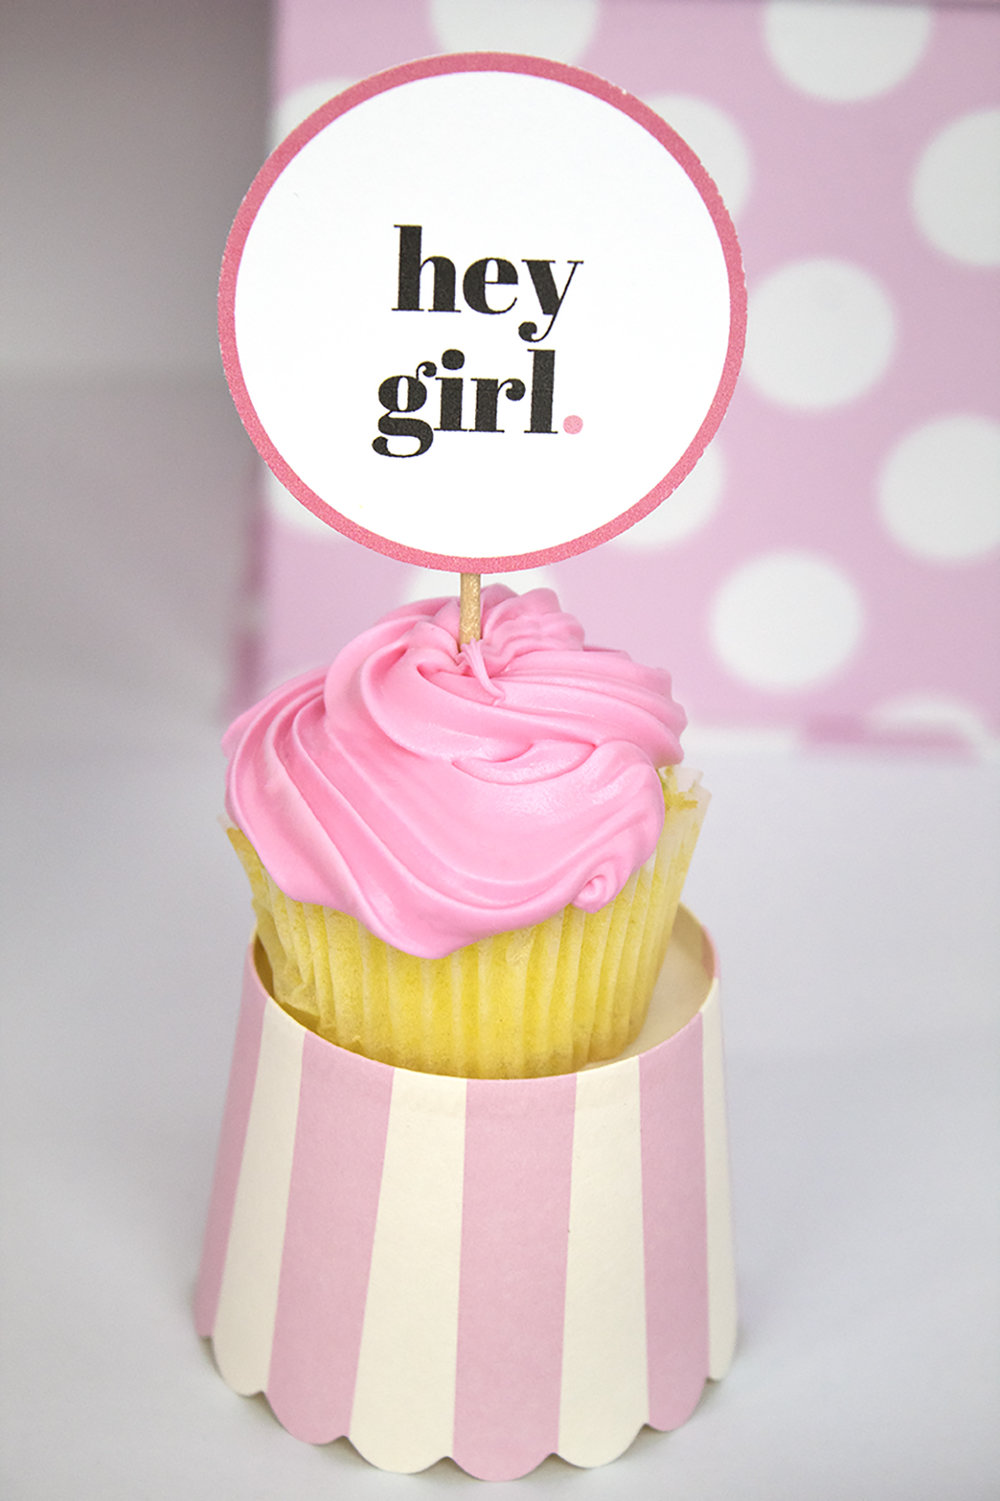 Hey Girl Gender Reveal 6.jpg